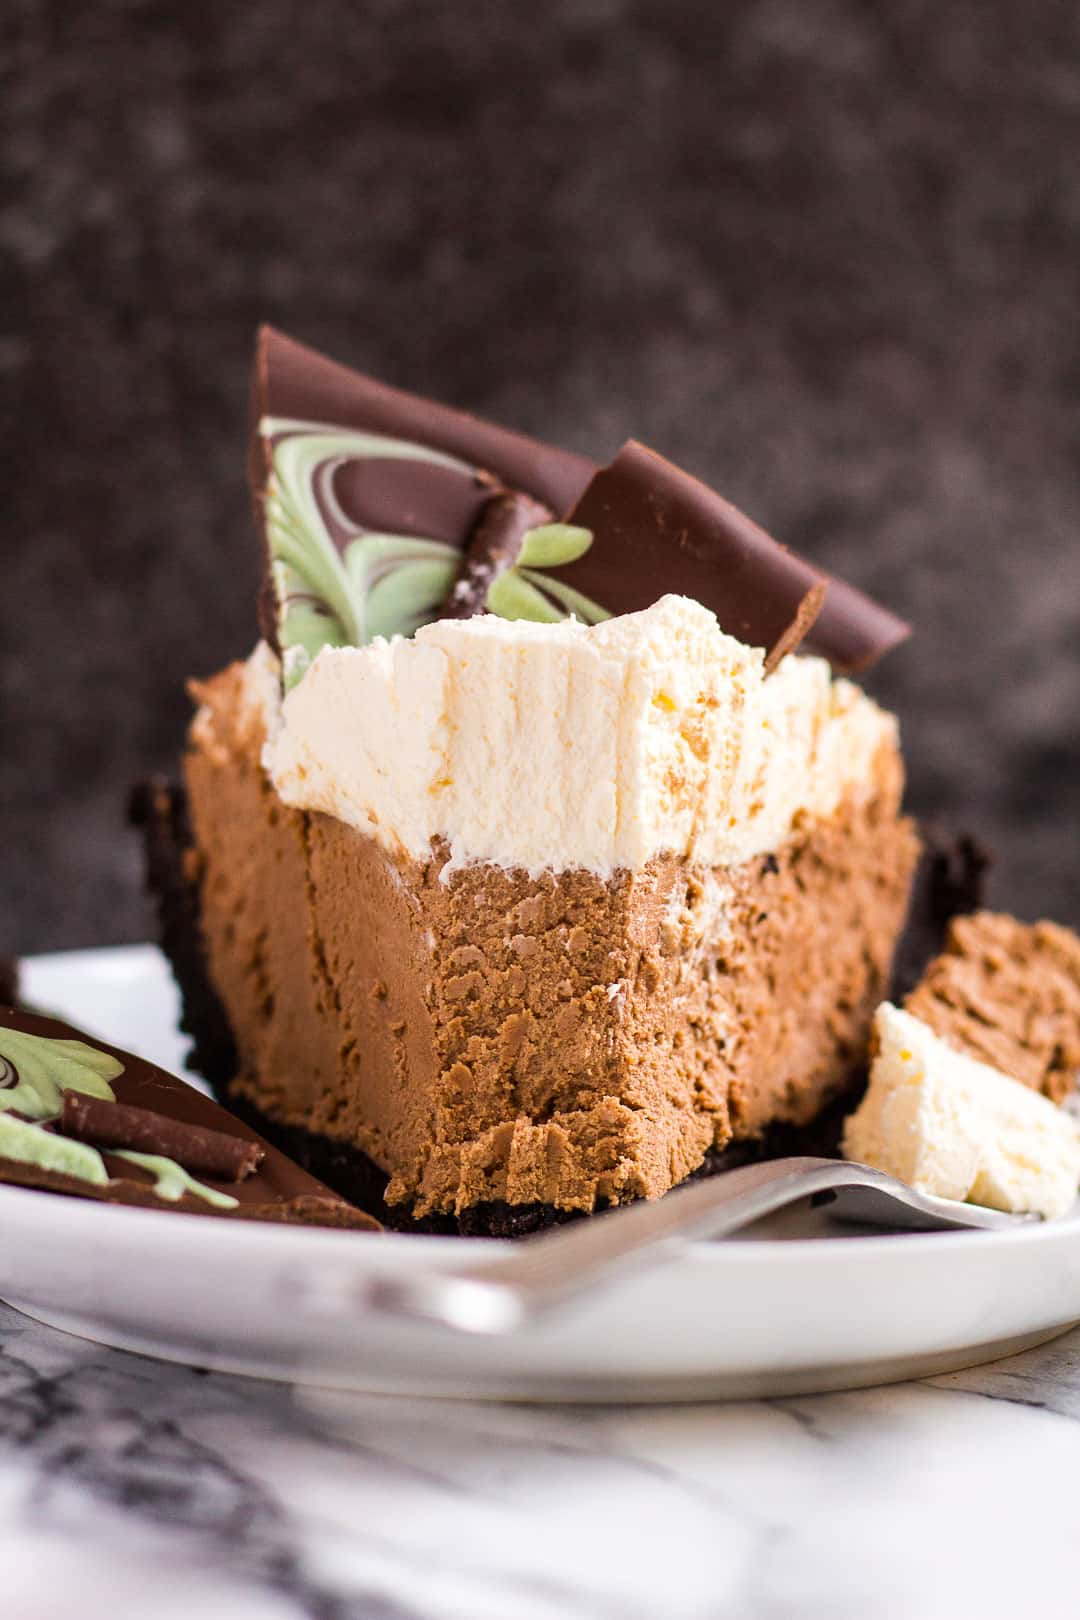 A slice of mint chocolate cream pie on a small white plate with a fork.